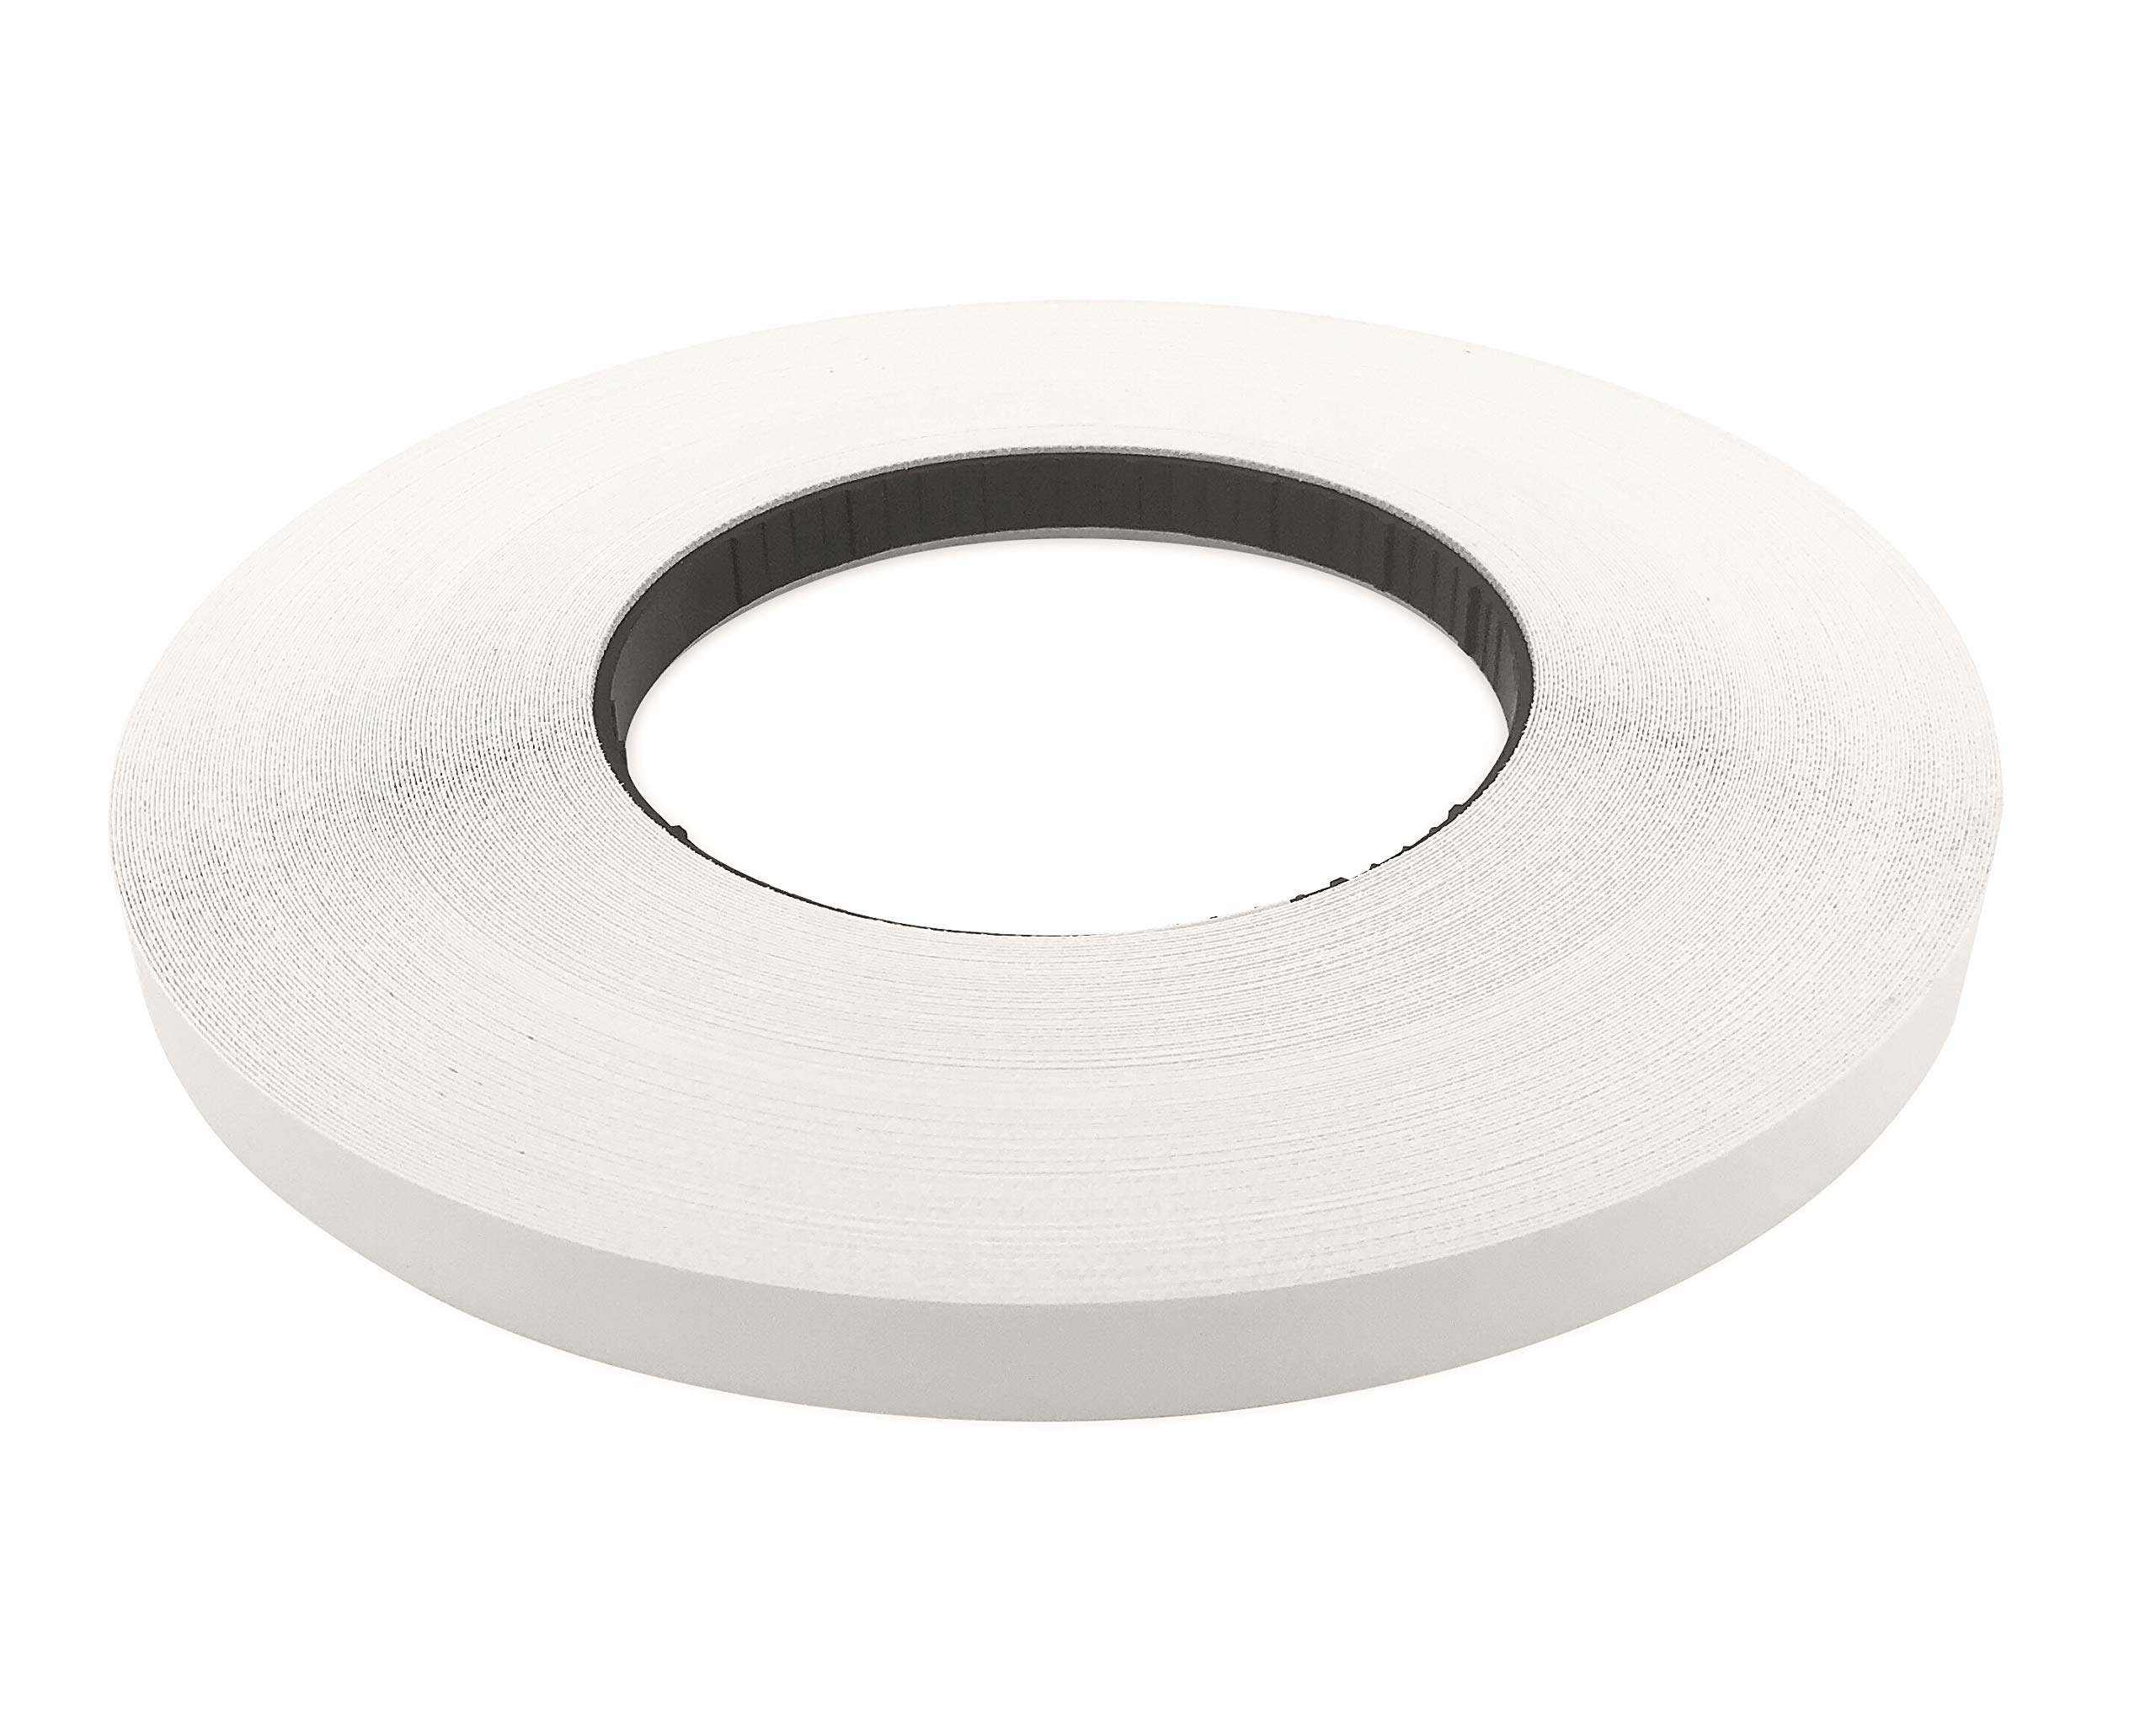 White Melamine 13/16'' X 250' Roll Preglued, White Edge Banding, Flexible White Tape, Easy Application Iron On with Hot Melt Adhesive. Smooth Finish White Melamine Edging. Made in USA. by Edge Supply